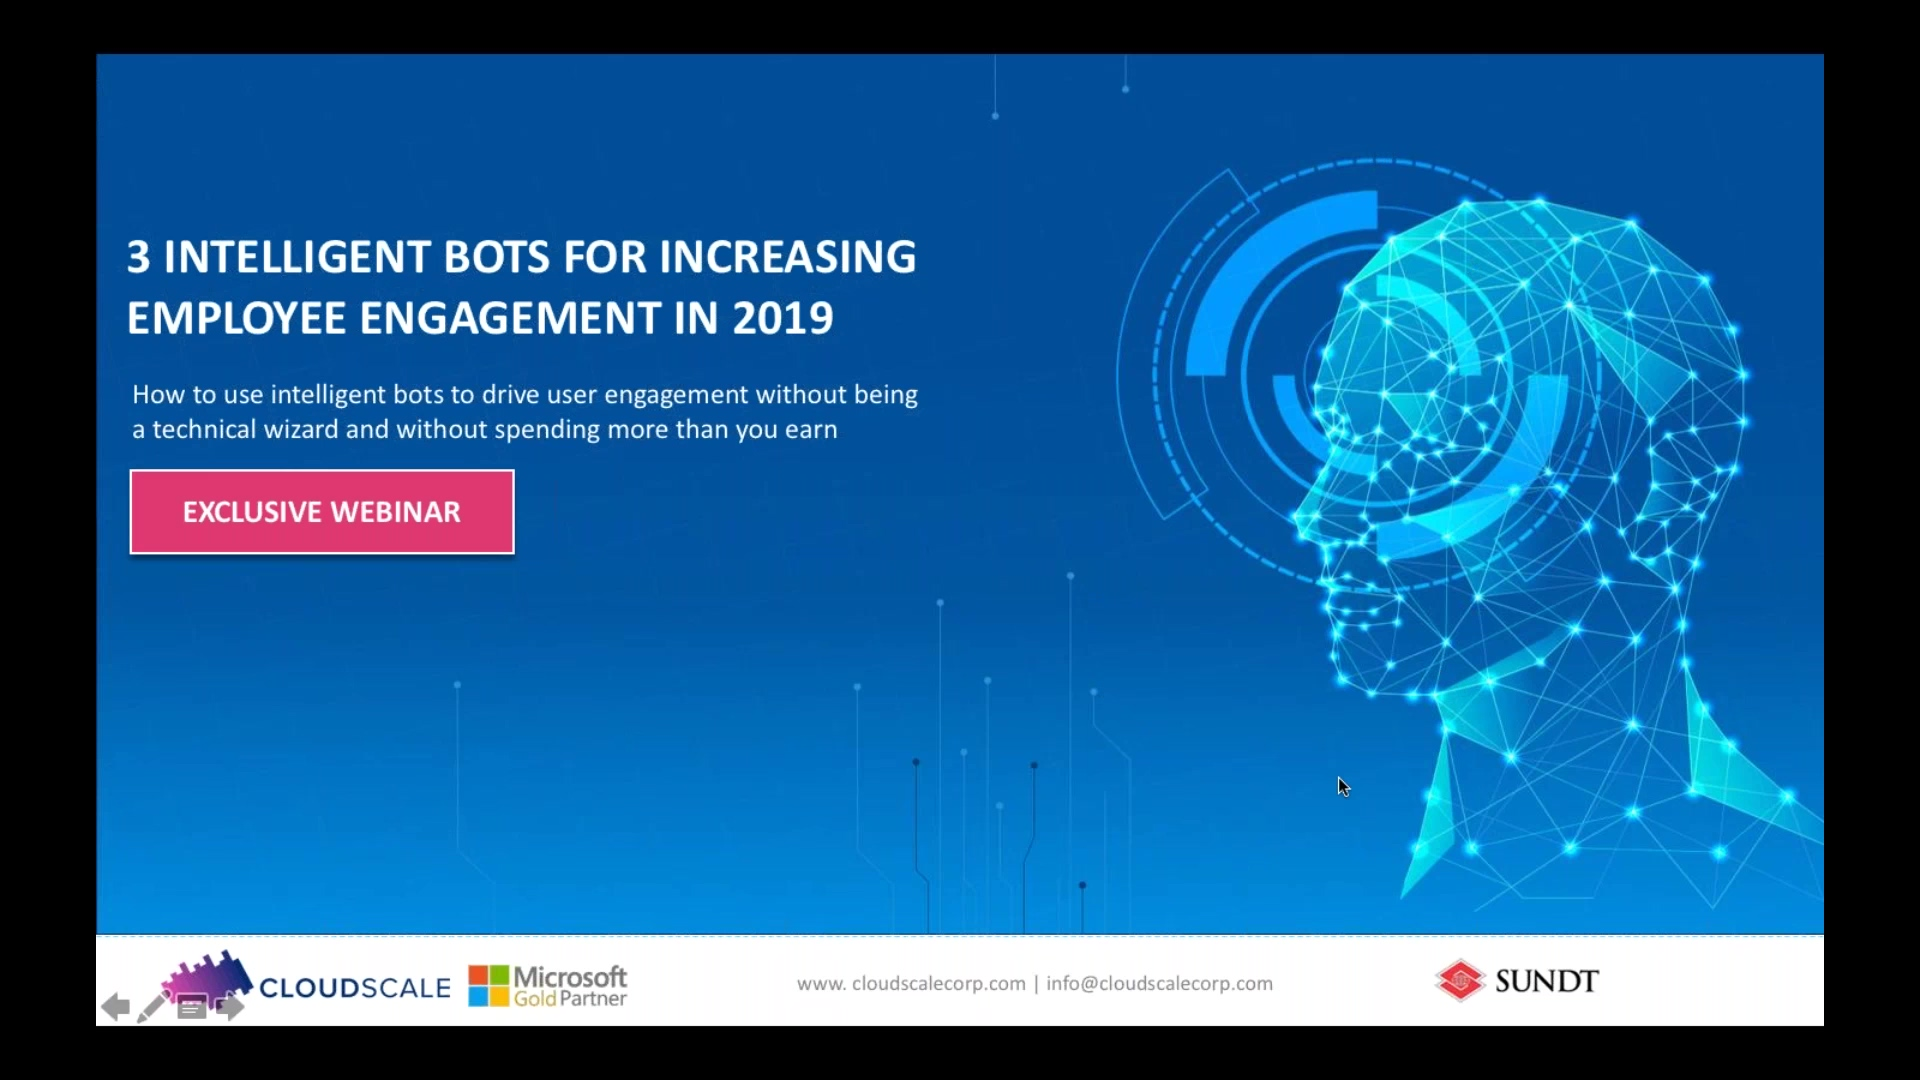 3 Intelligent Bots for Increasing Employee Engagement in 2019 [Video]